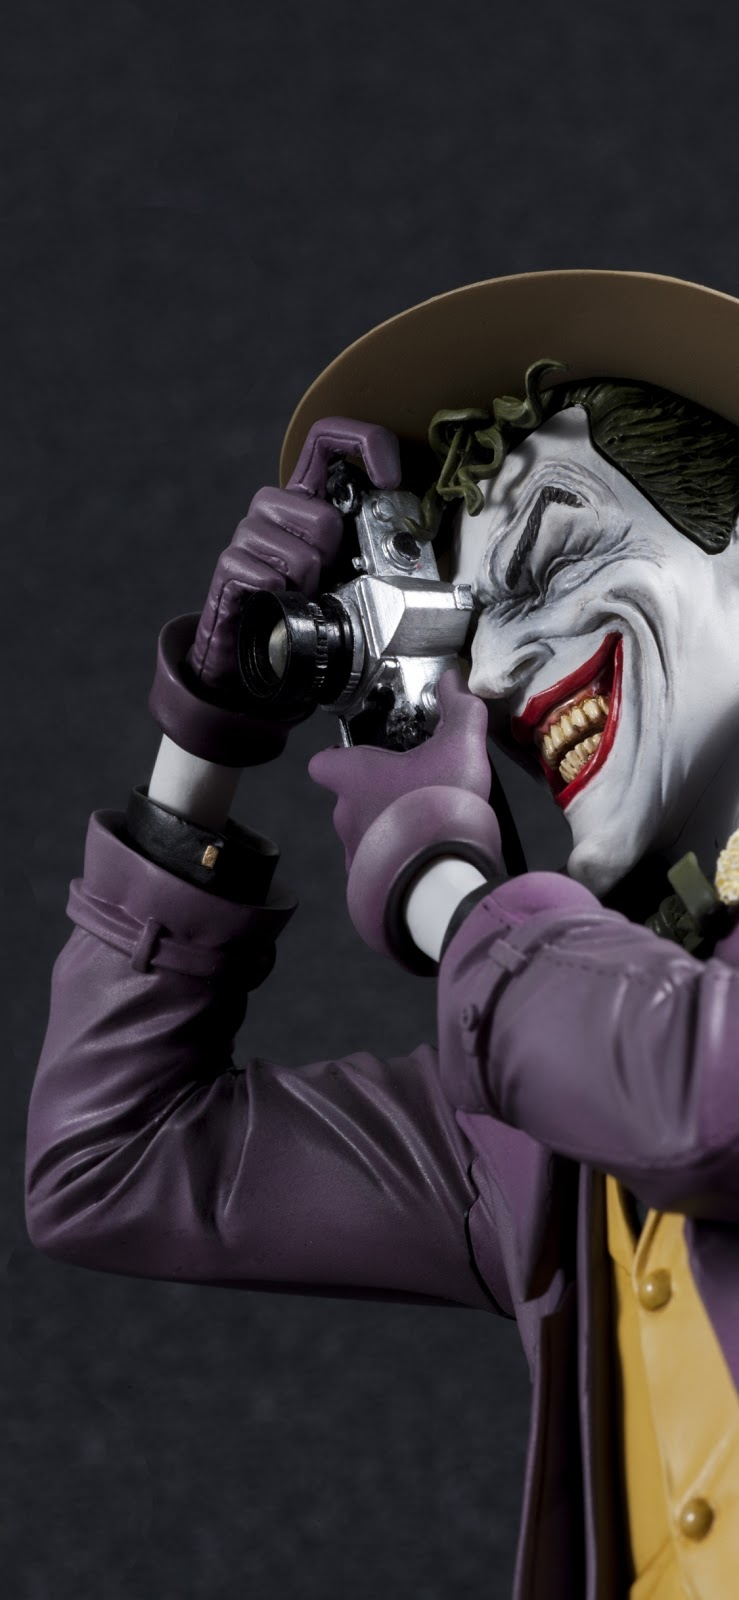 Batman The Killing Joke ,Joker Mobile Wallpaper